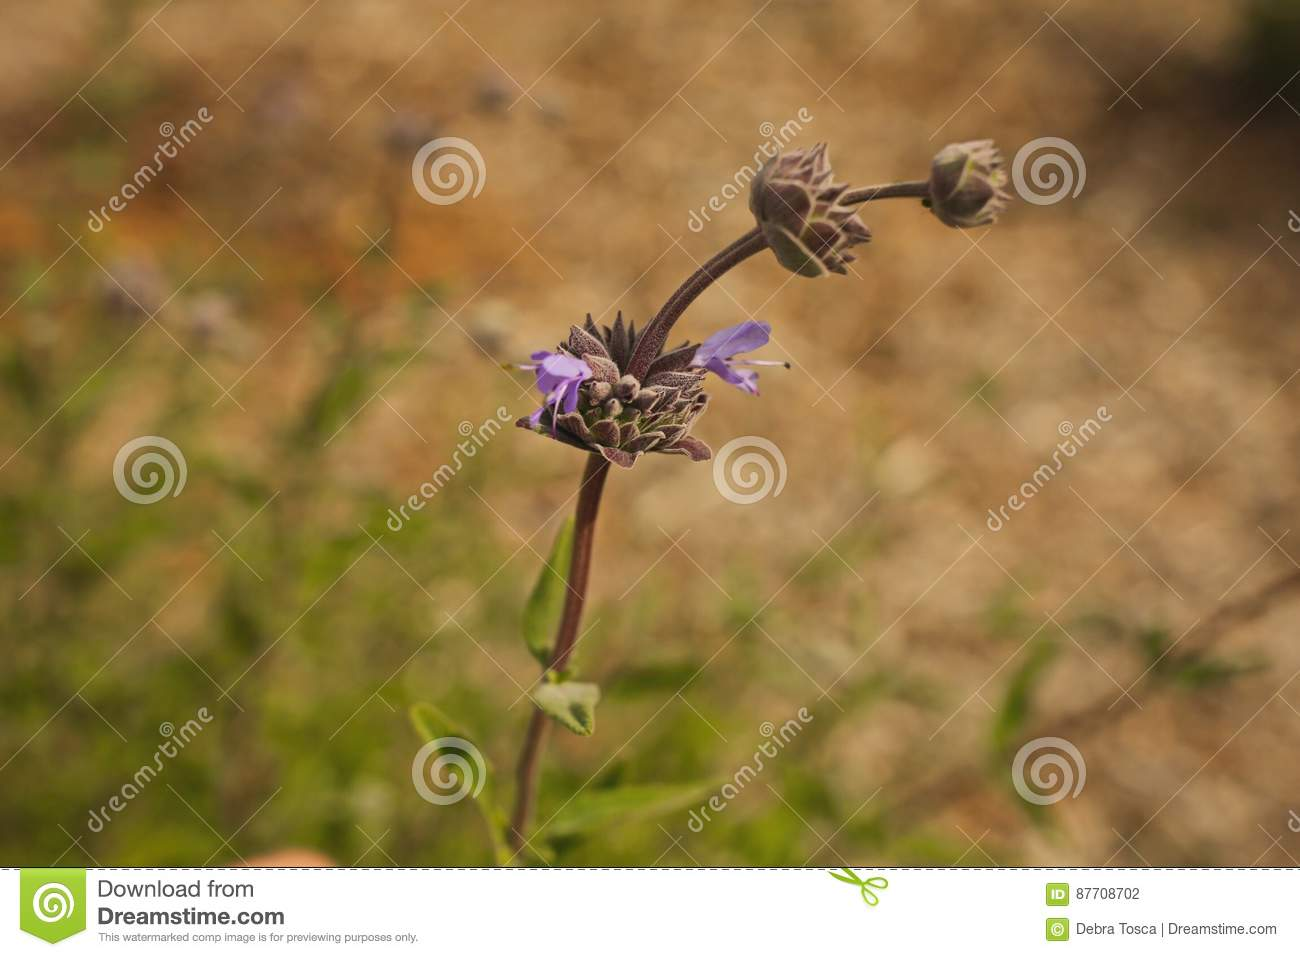 Bourgeonne le wildflower pourpre